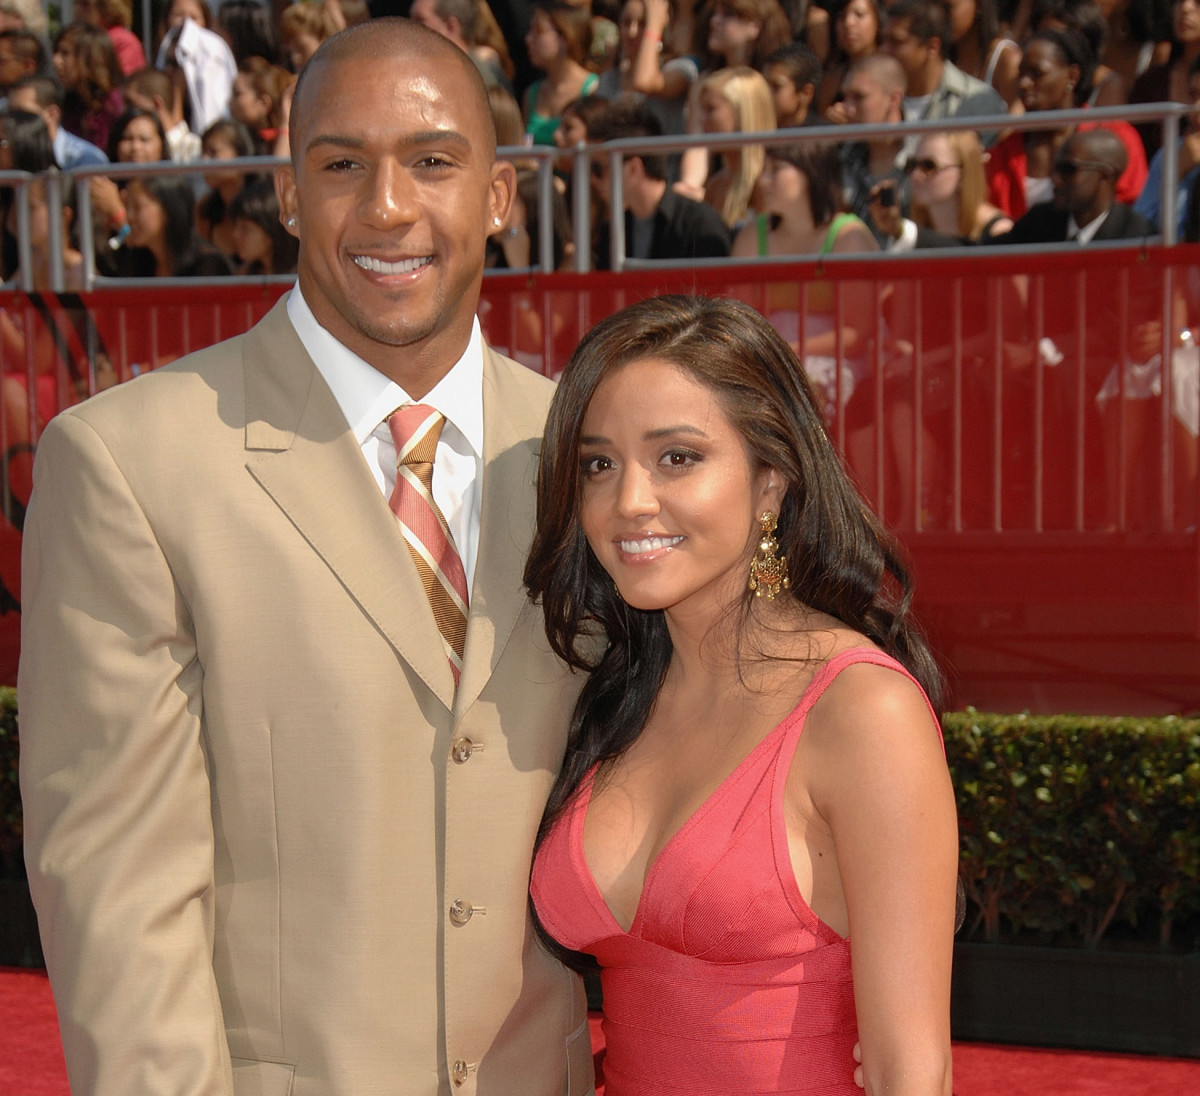 Winslow Jr. and wife, Janelle, at the 2008 ESPYs.